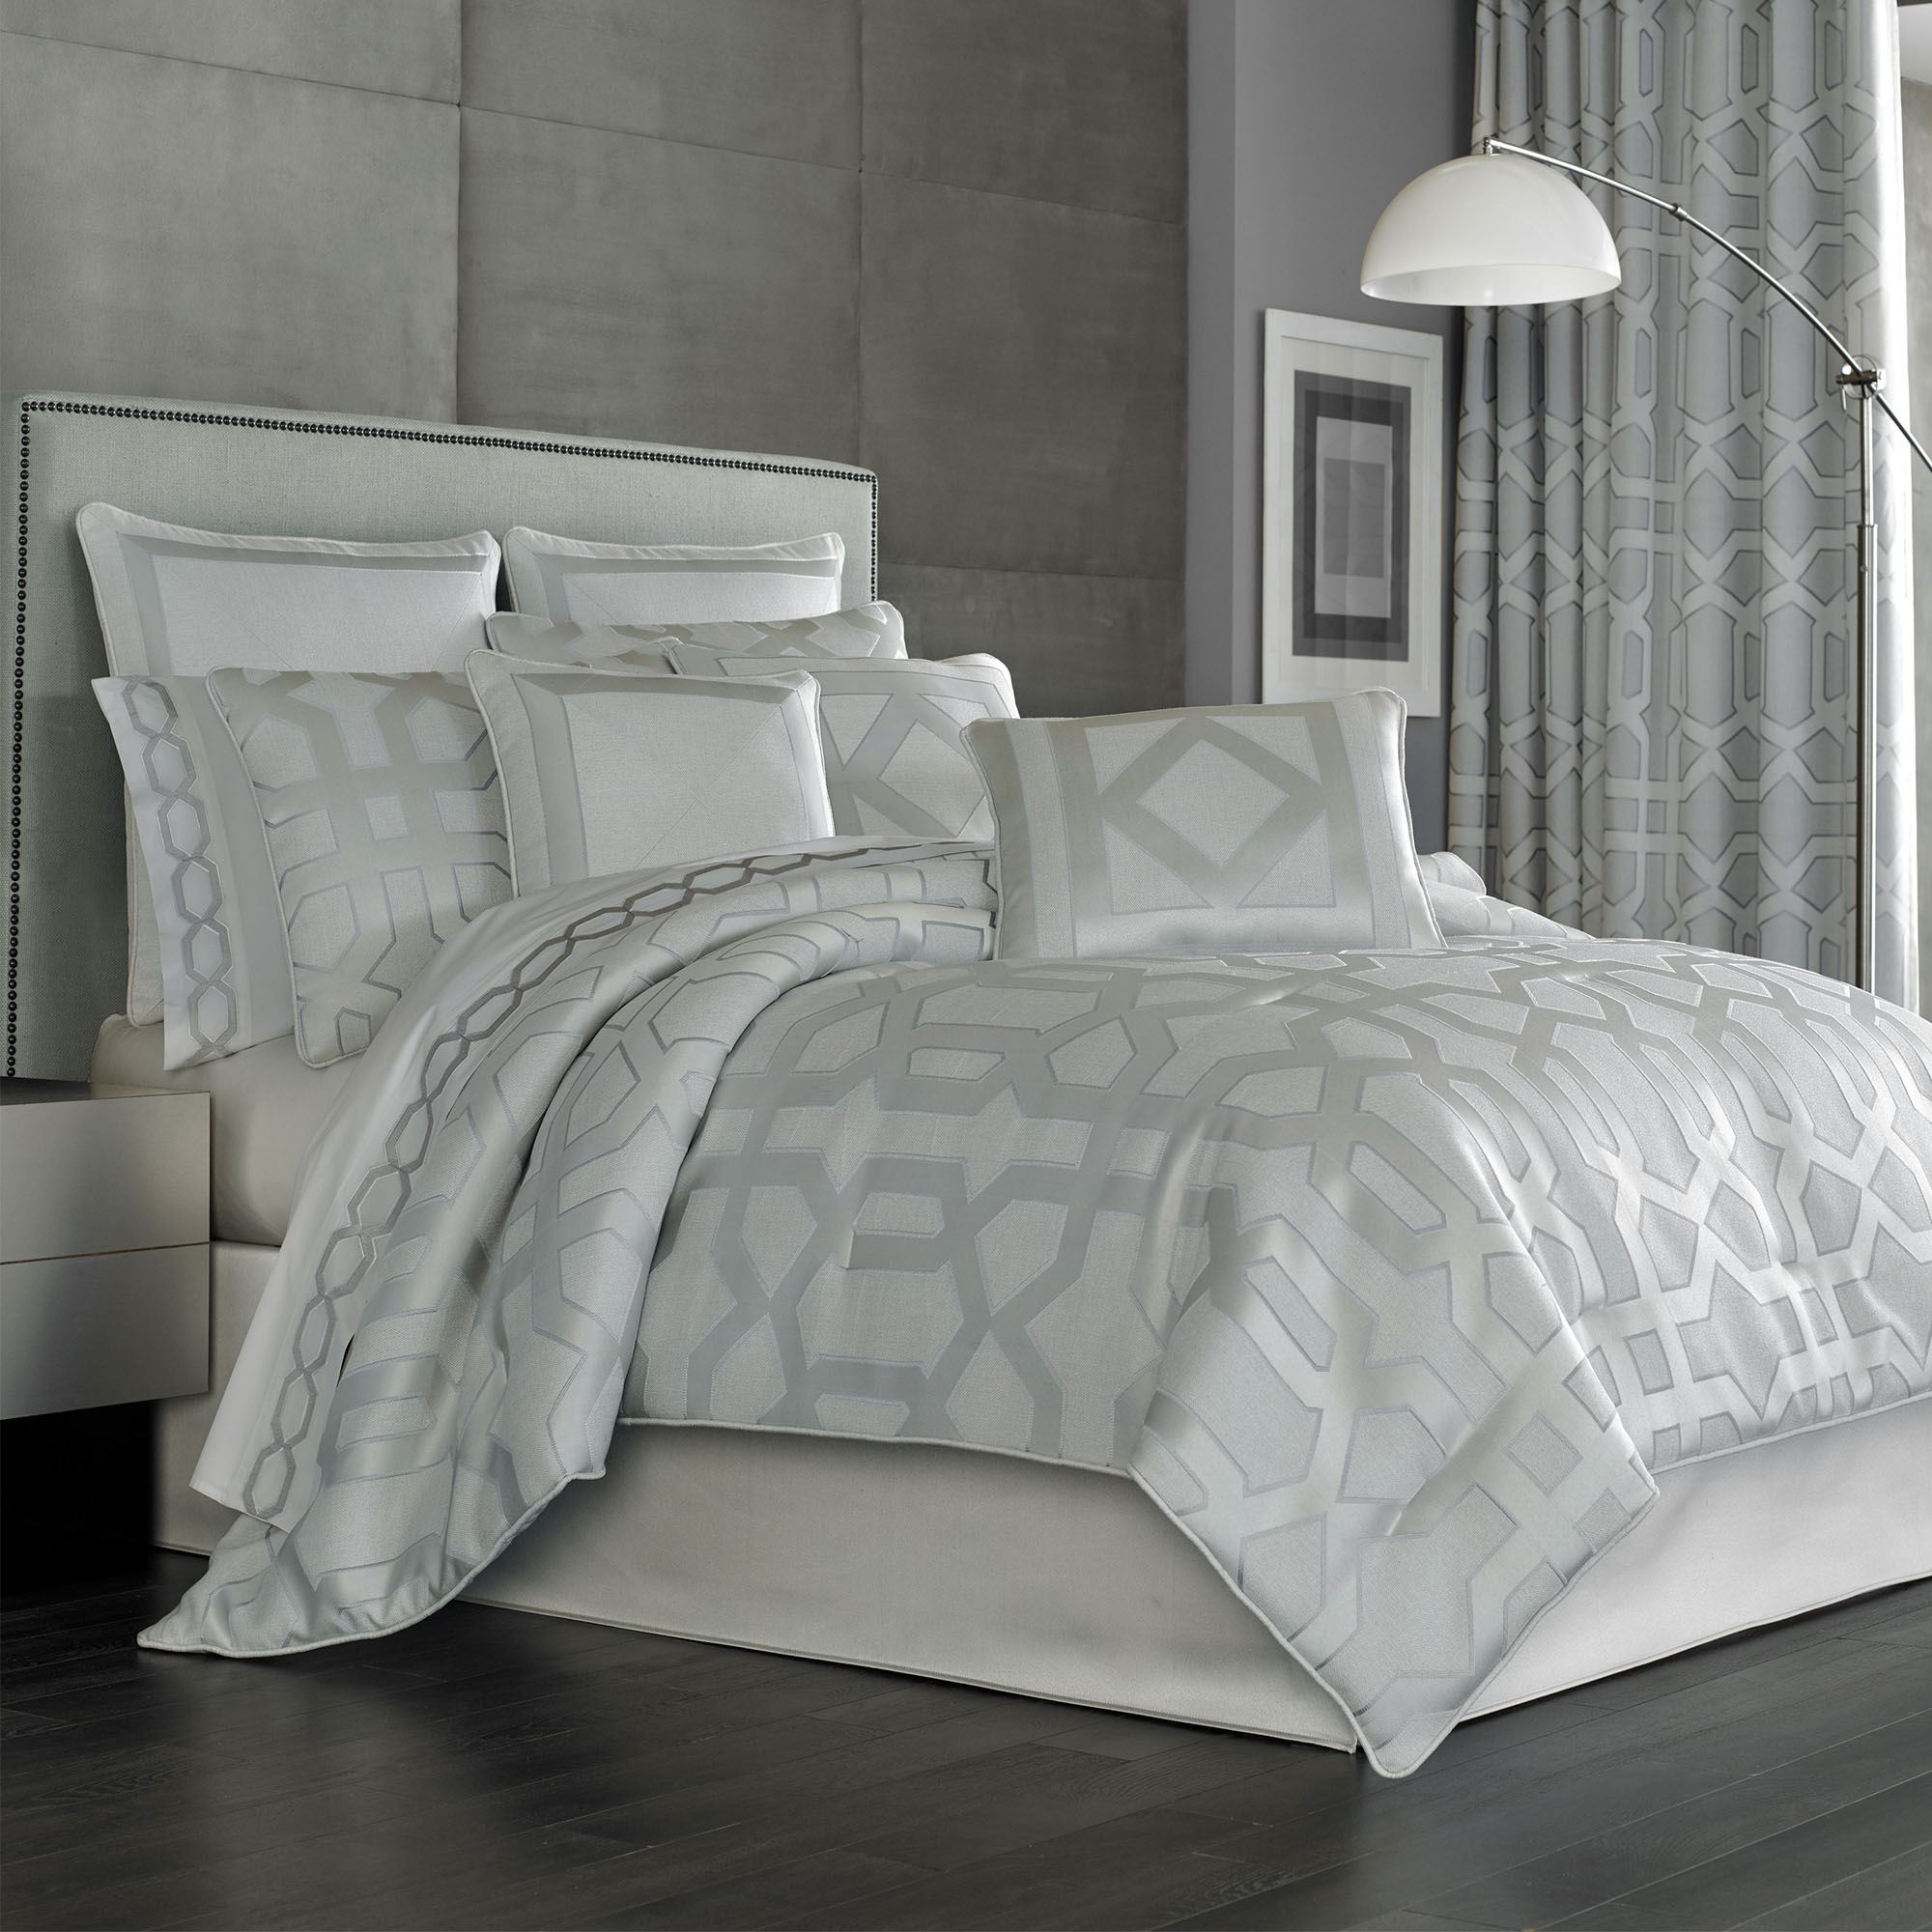 Kennedy Silver And Platinum Gray Comforter Bedding By Five Queens Court